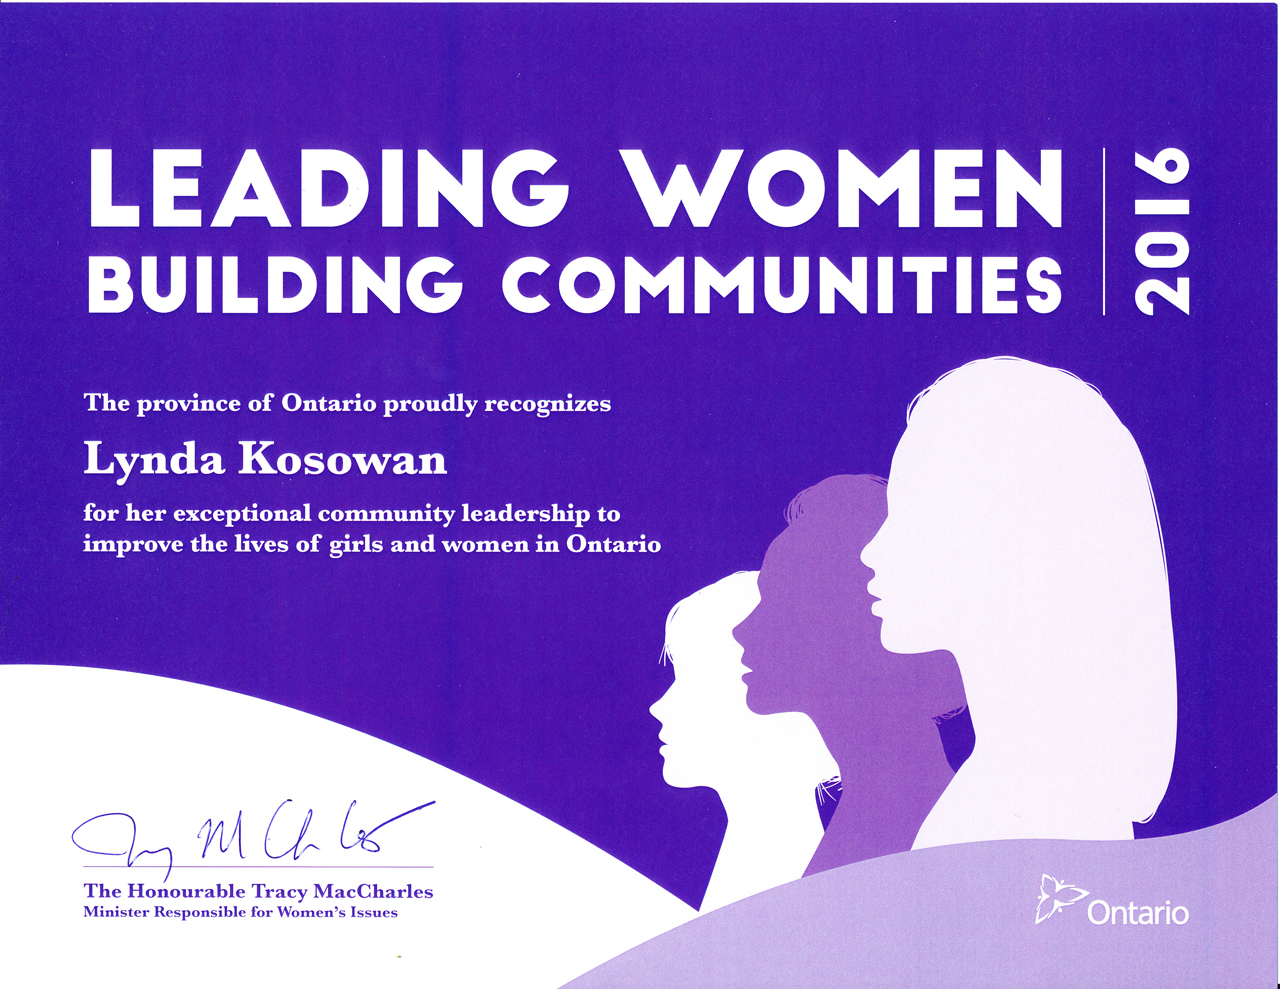 Lynda Kosowan's Leading women building communities 2016 award certificate